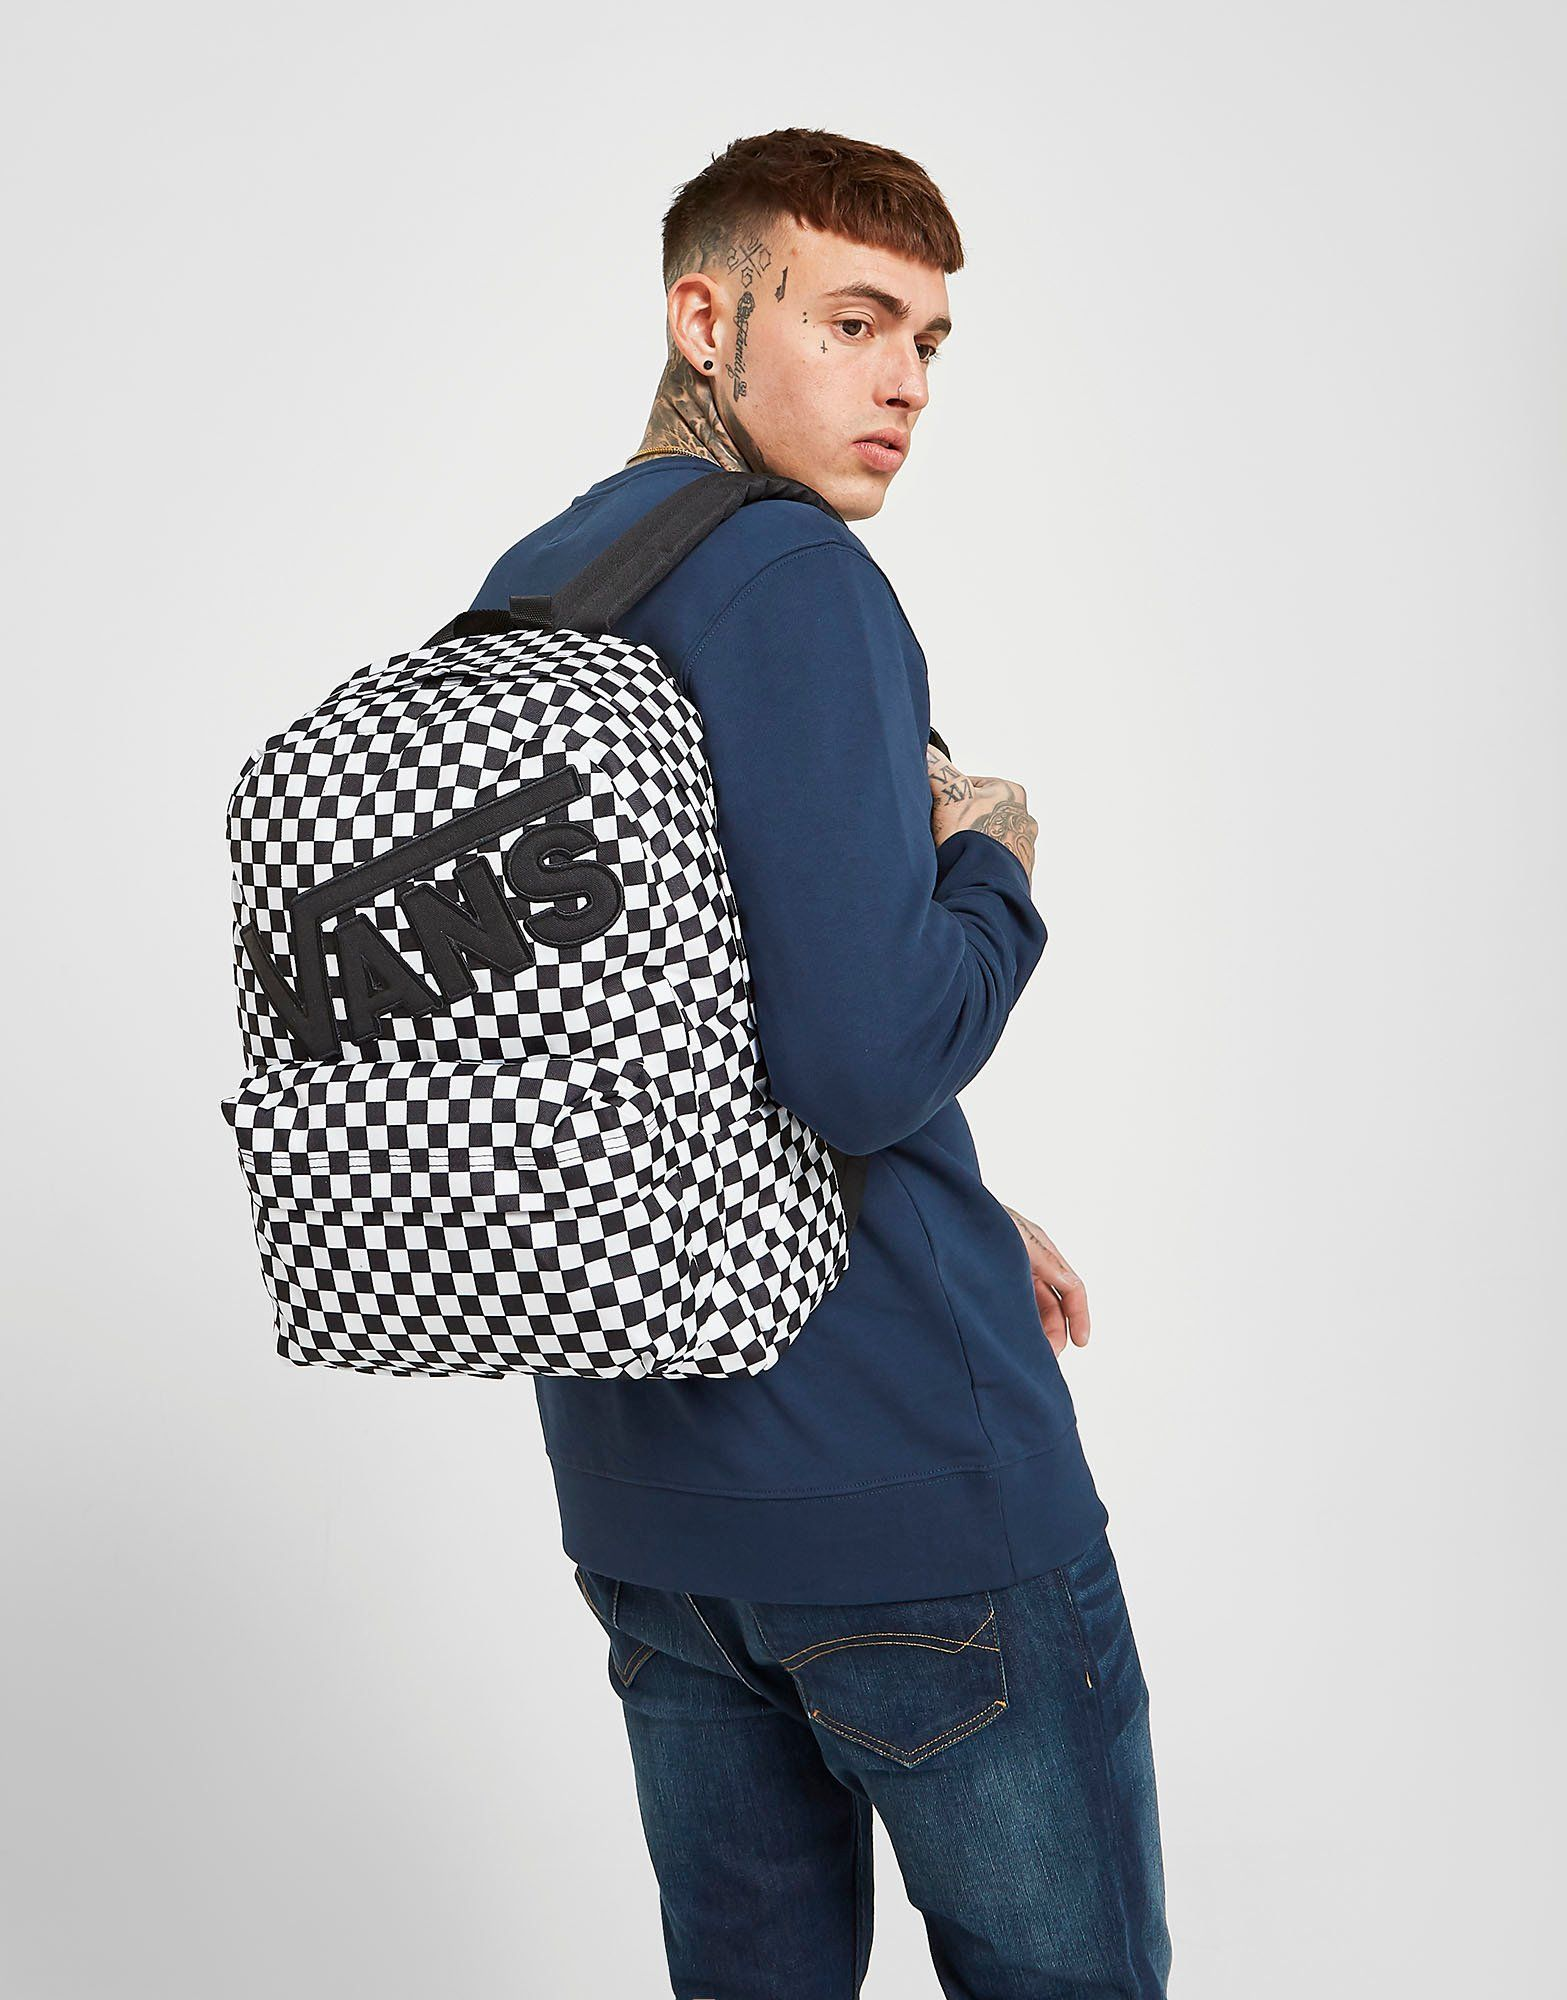 Vans Check Backpack Jd Sports Tas Lacoste Zip Basic Special Colours